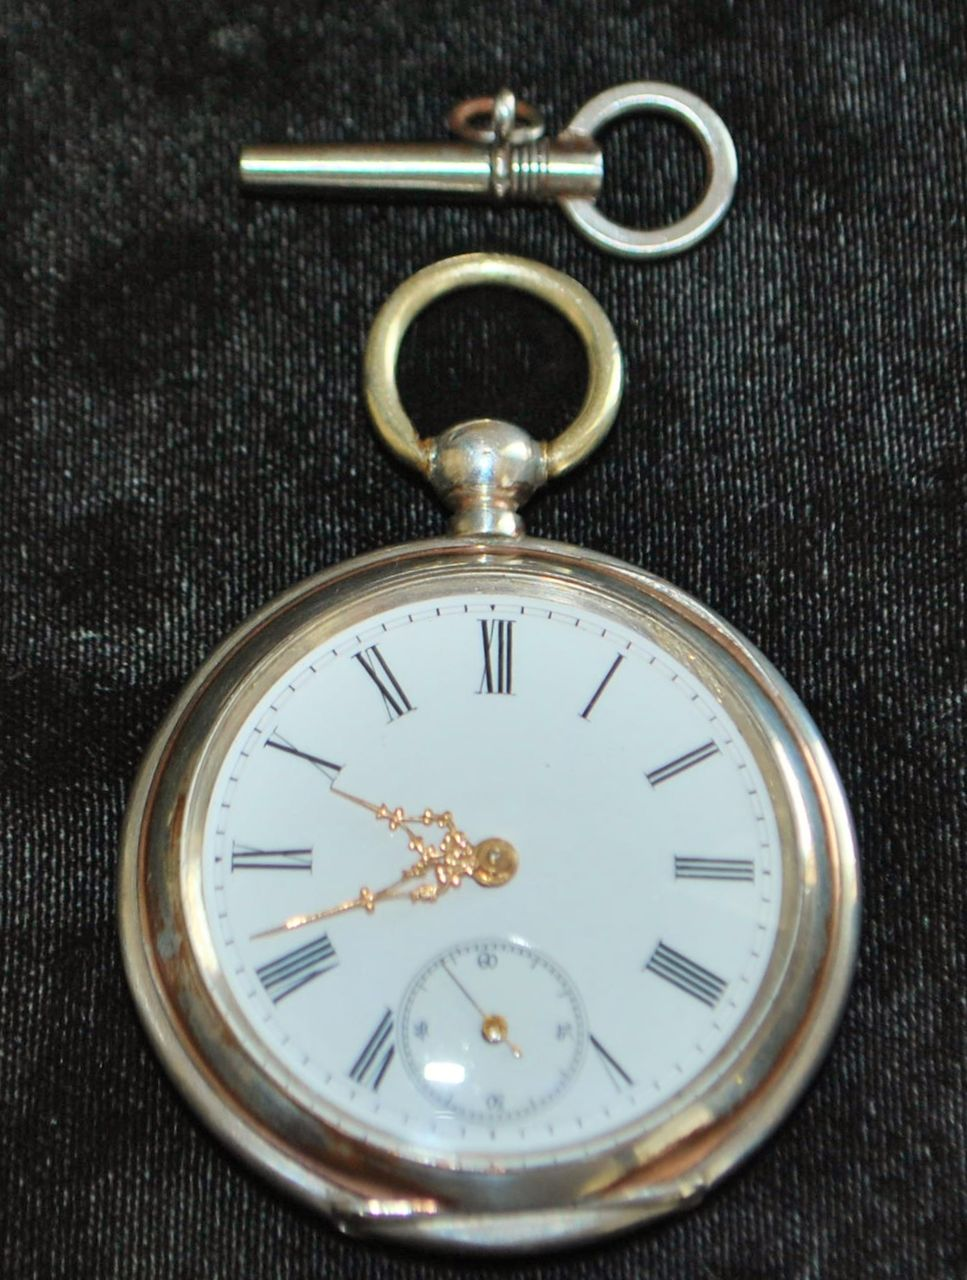 Swiss Cortebert 800 Silver Pocket Watch, 1880's